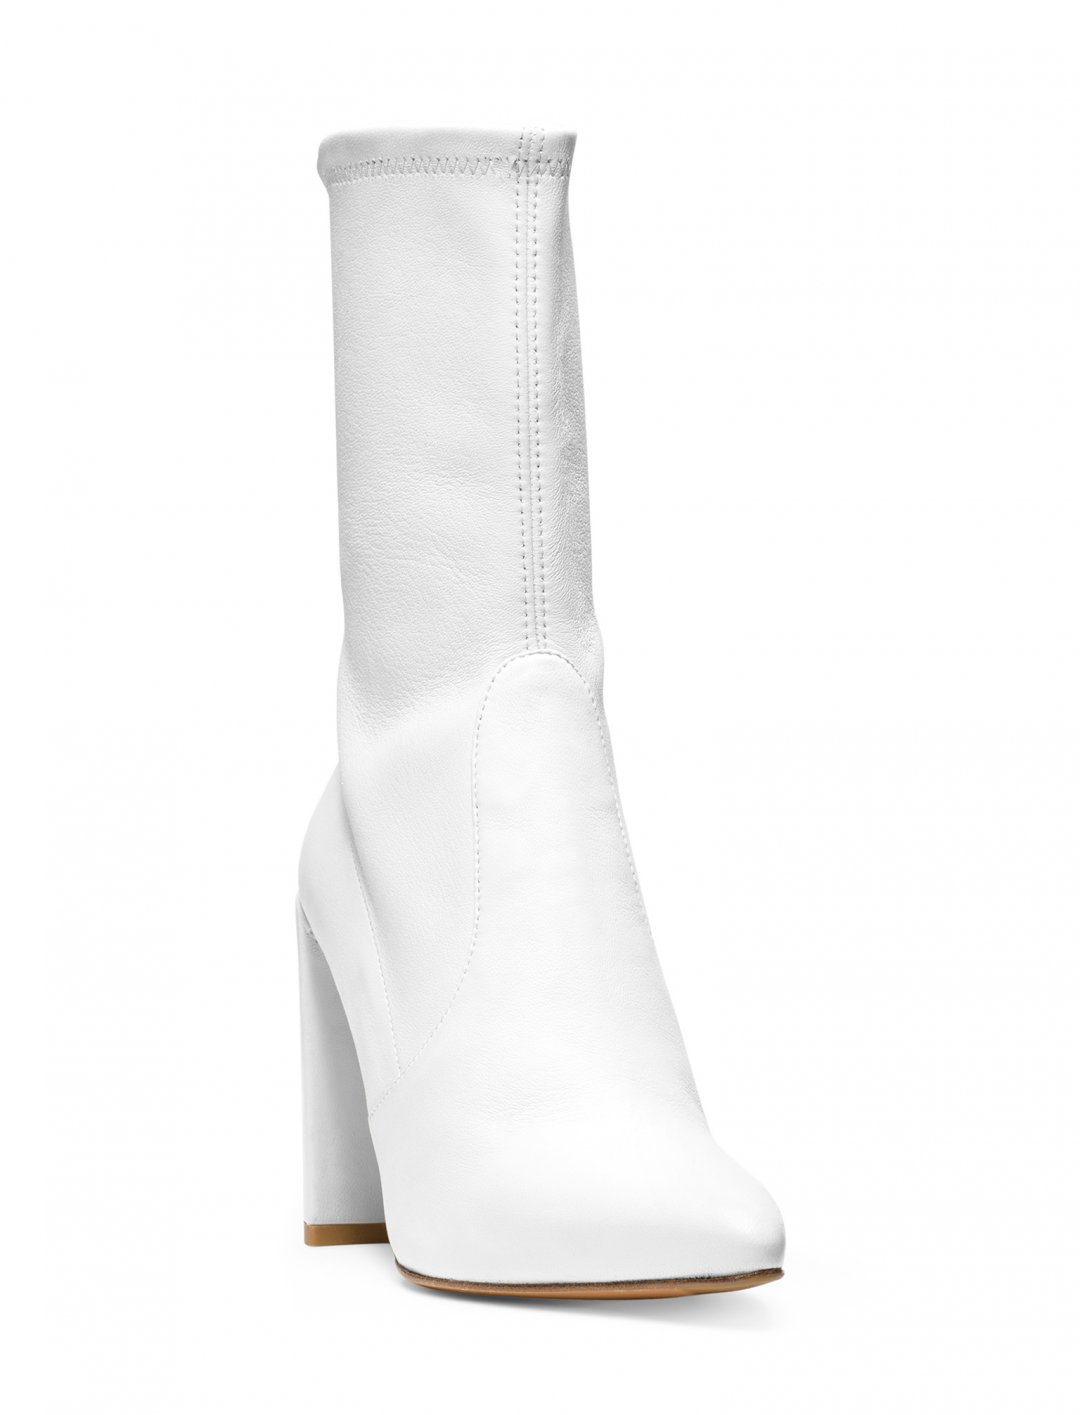 "Ray Blk's White Bootie {""id"":12,""product_section_id"":1,""name"":""Shoes"",""order"":12} Stuart Weitzman"